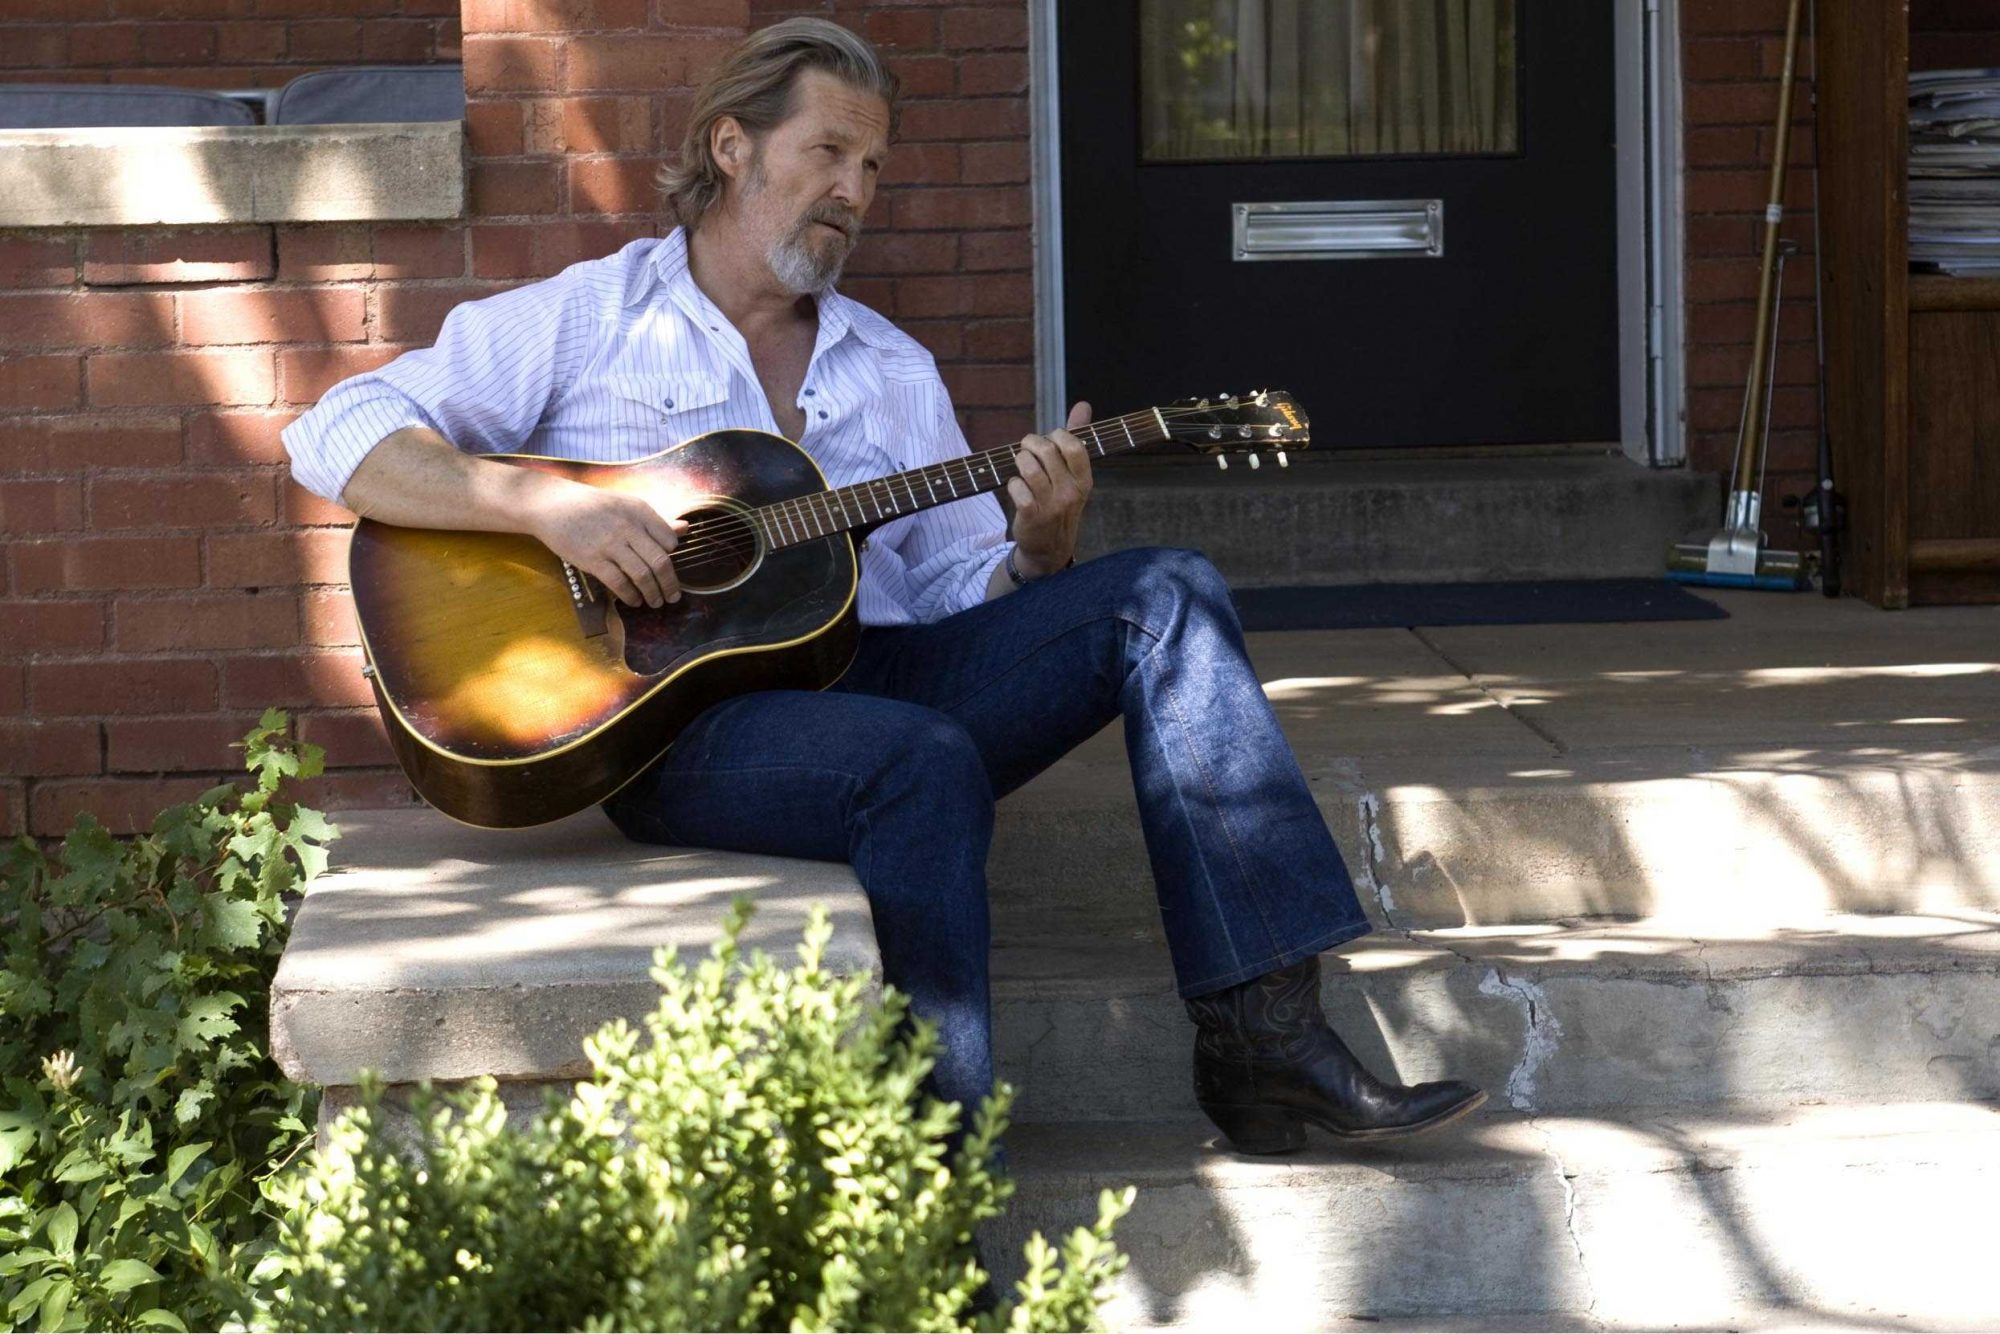 Jeff-Bridges-Crazy-Heart-jeff-bridges-20575738-2490-1661-2.jpg